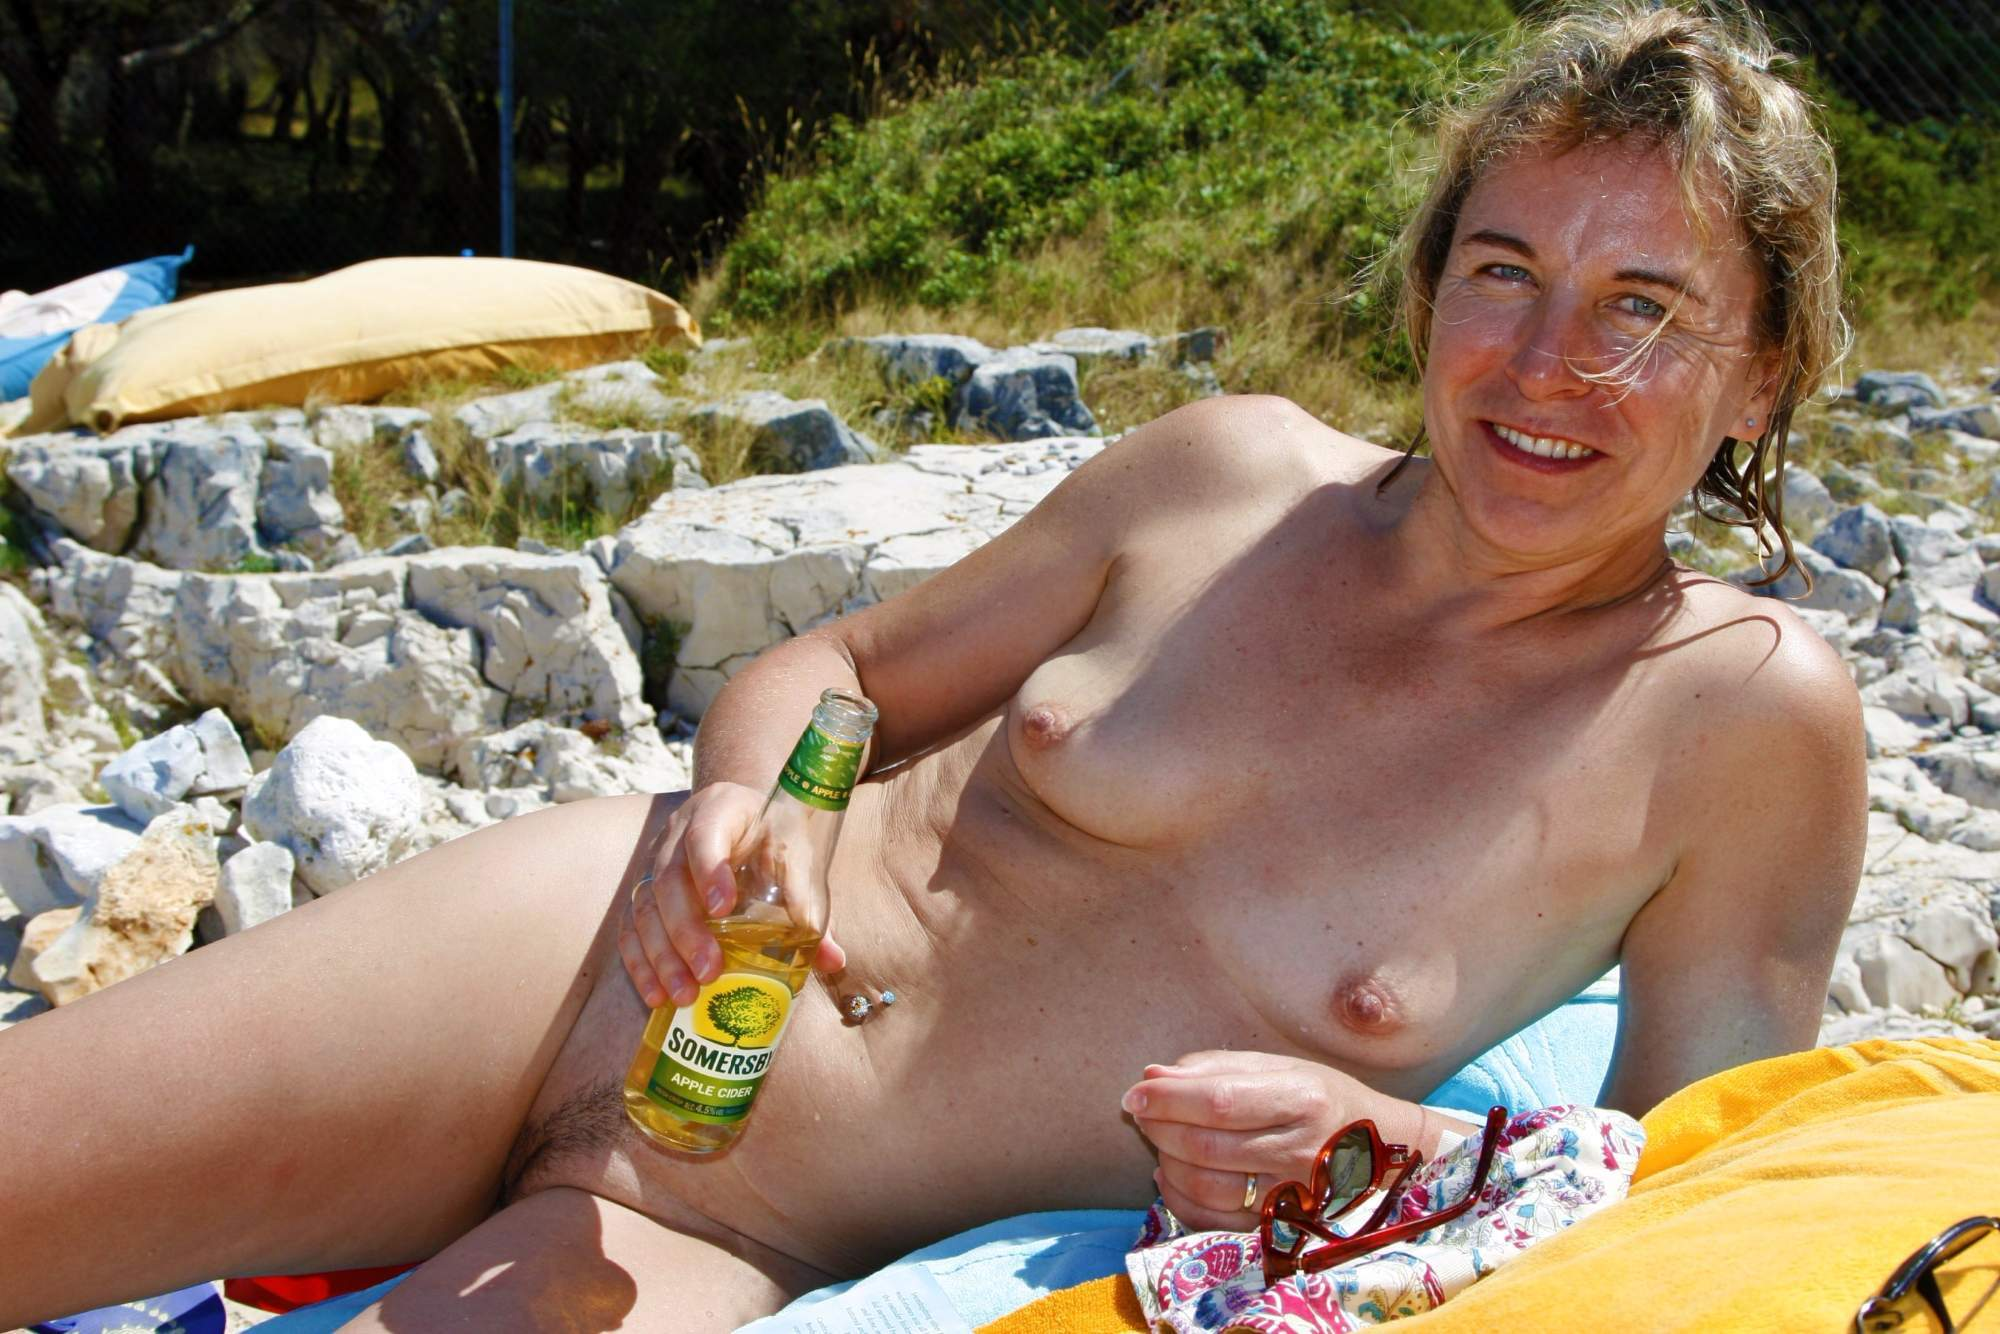 Rajce nudist jpg apologise, but